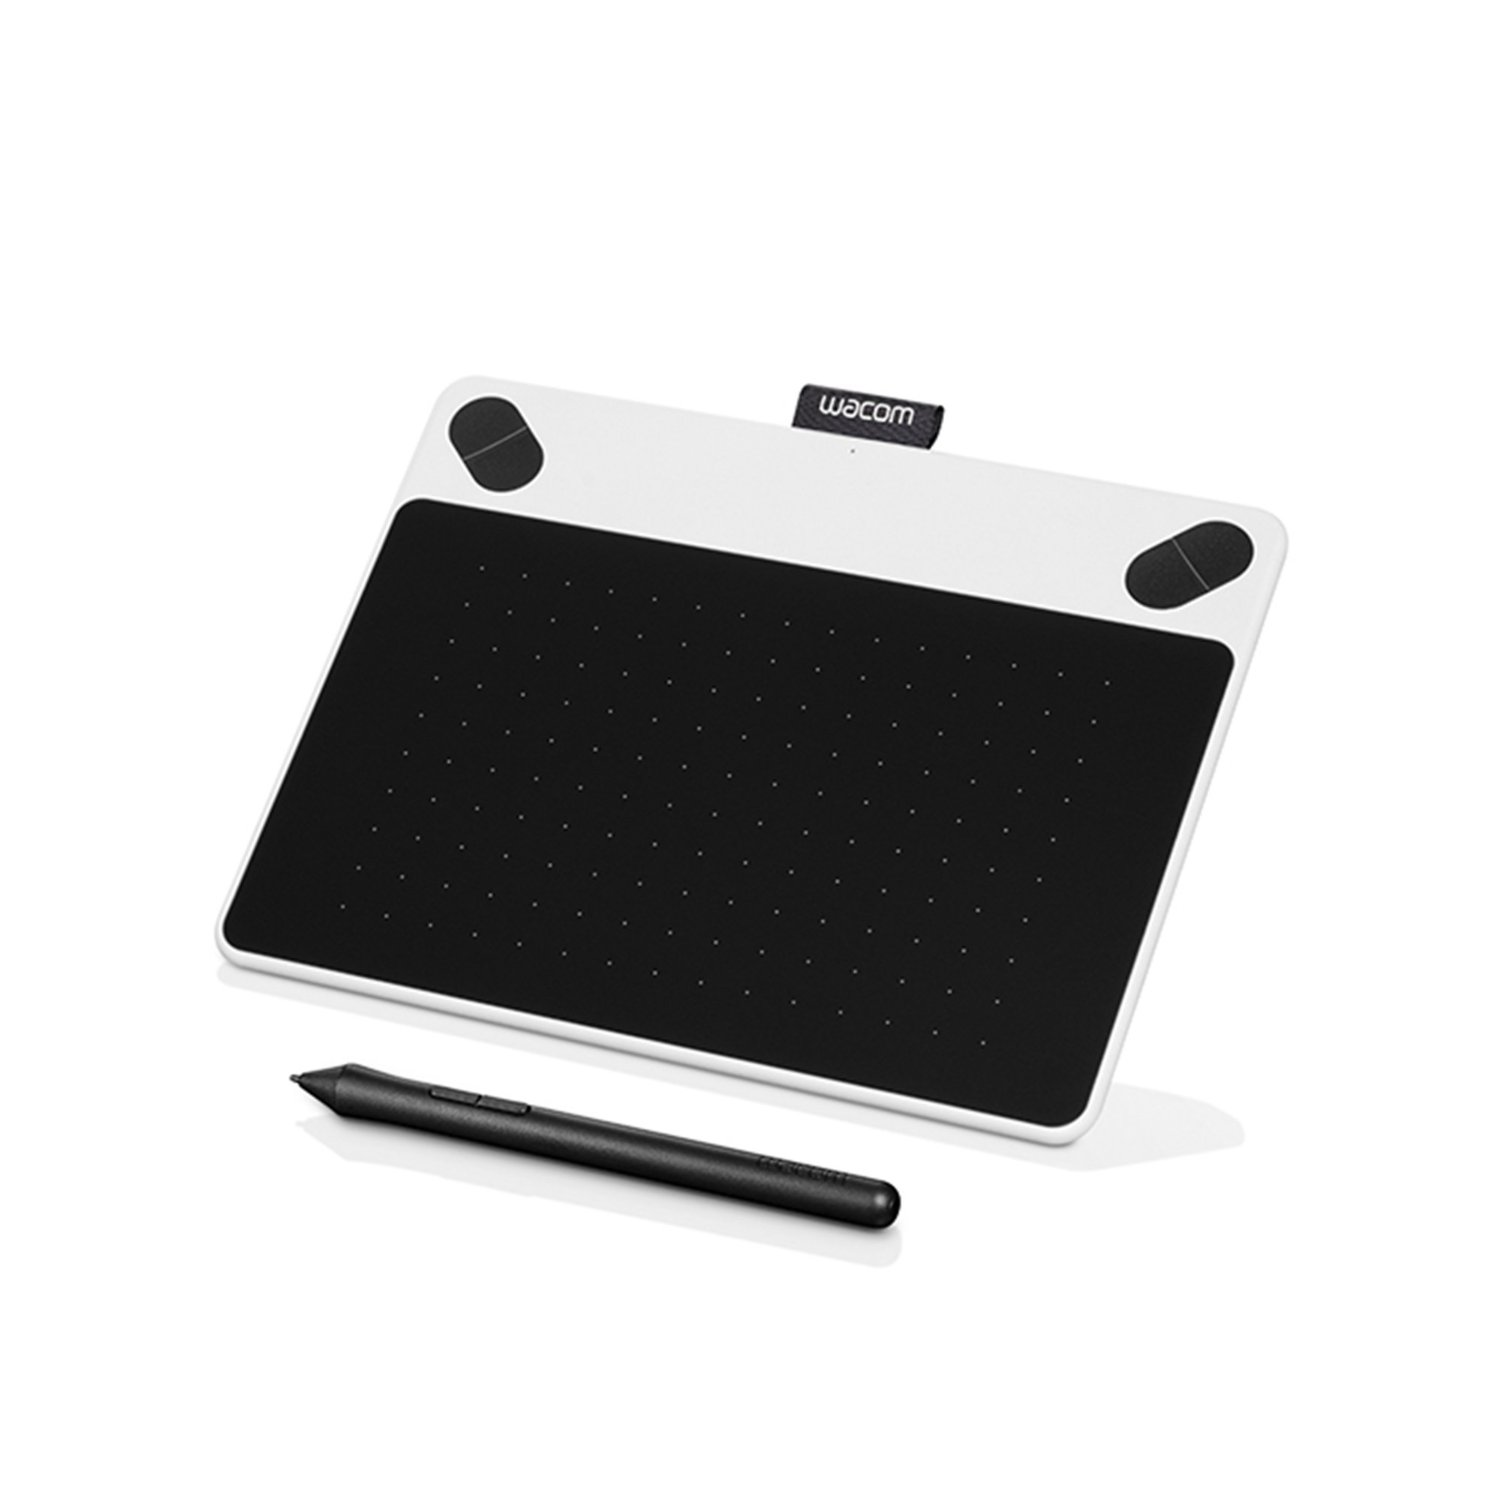 1. Wacom Intuos Draw CTL490DW Digital Drawing and Graphics Tablet - Best Digital Drawing Tablets